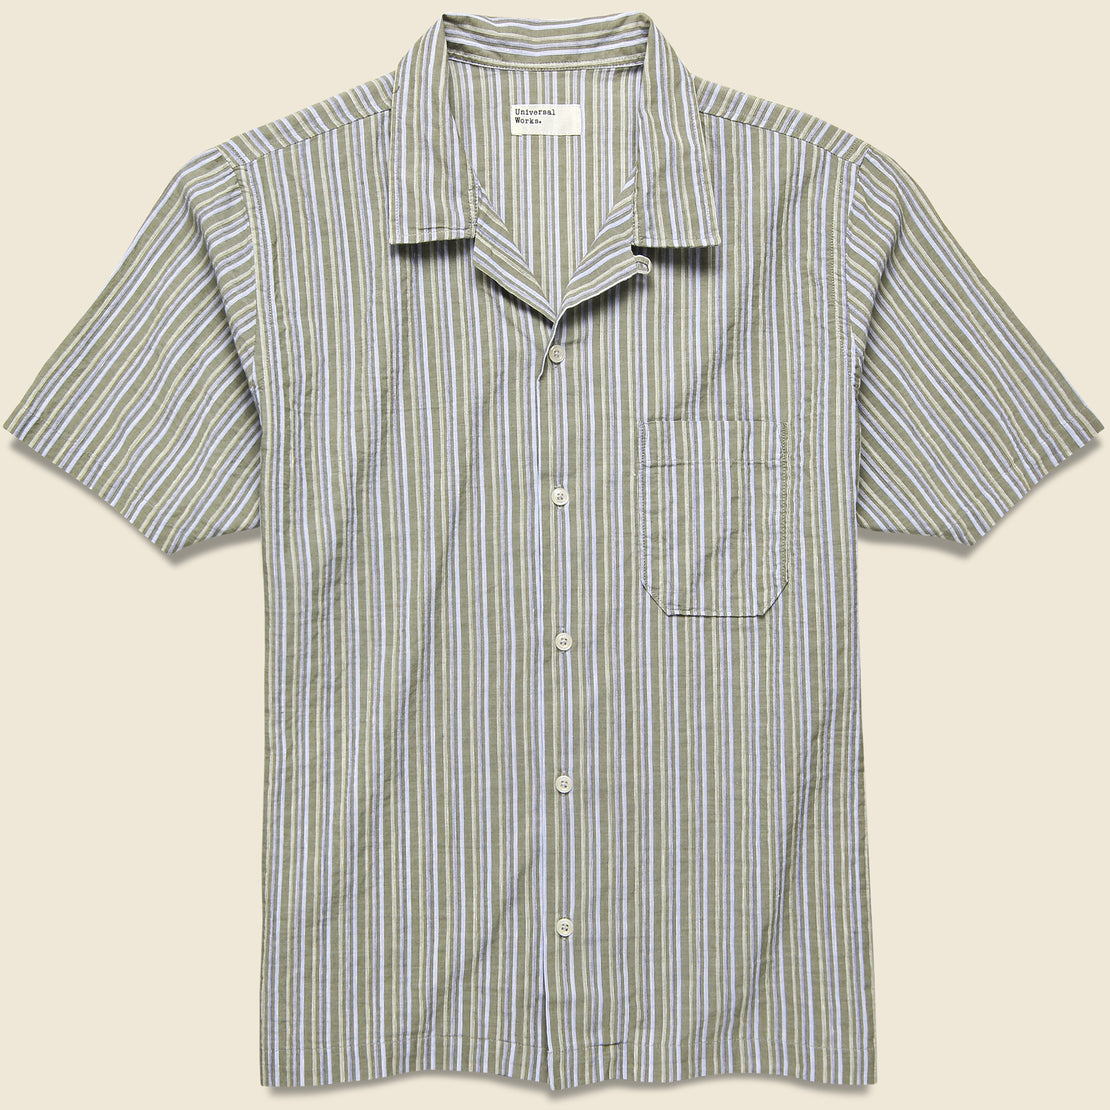 Universal Works Road Shirt - Olive Elton 2 Stripe